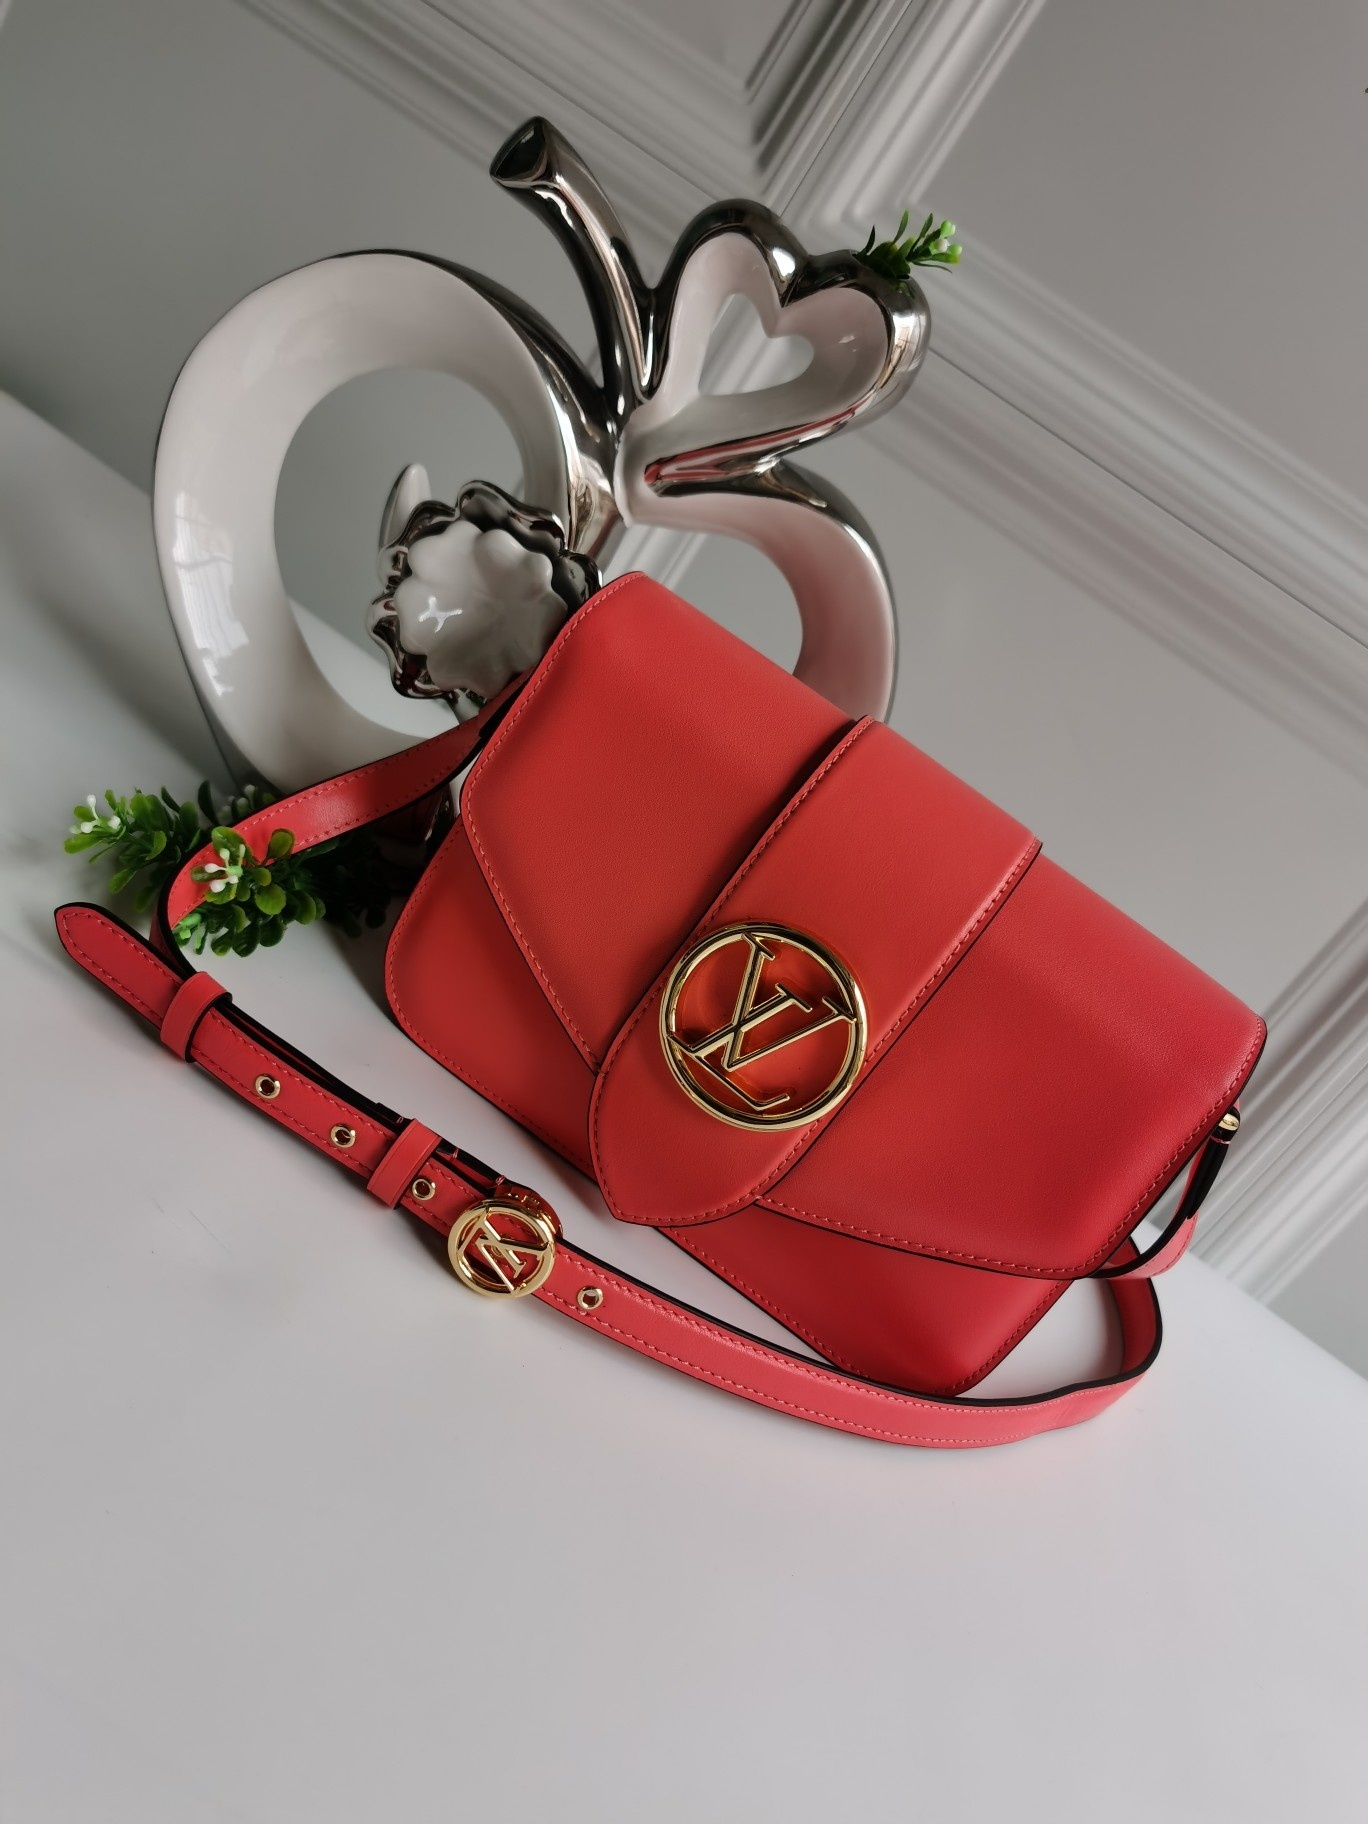 NEW Replica Louis Vuitton Pont 9 Handbag Smooth Leather Red